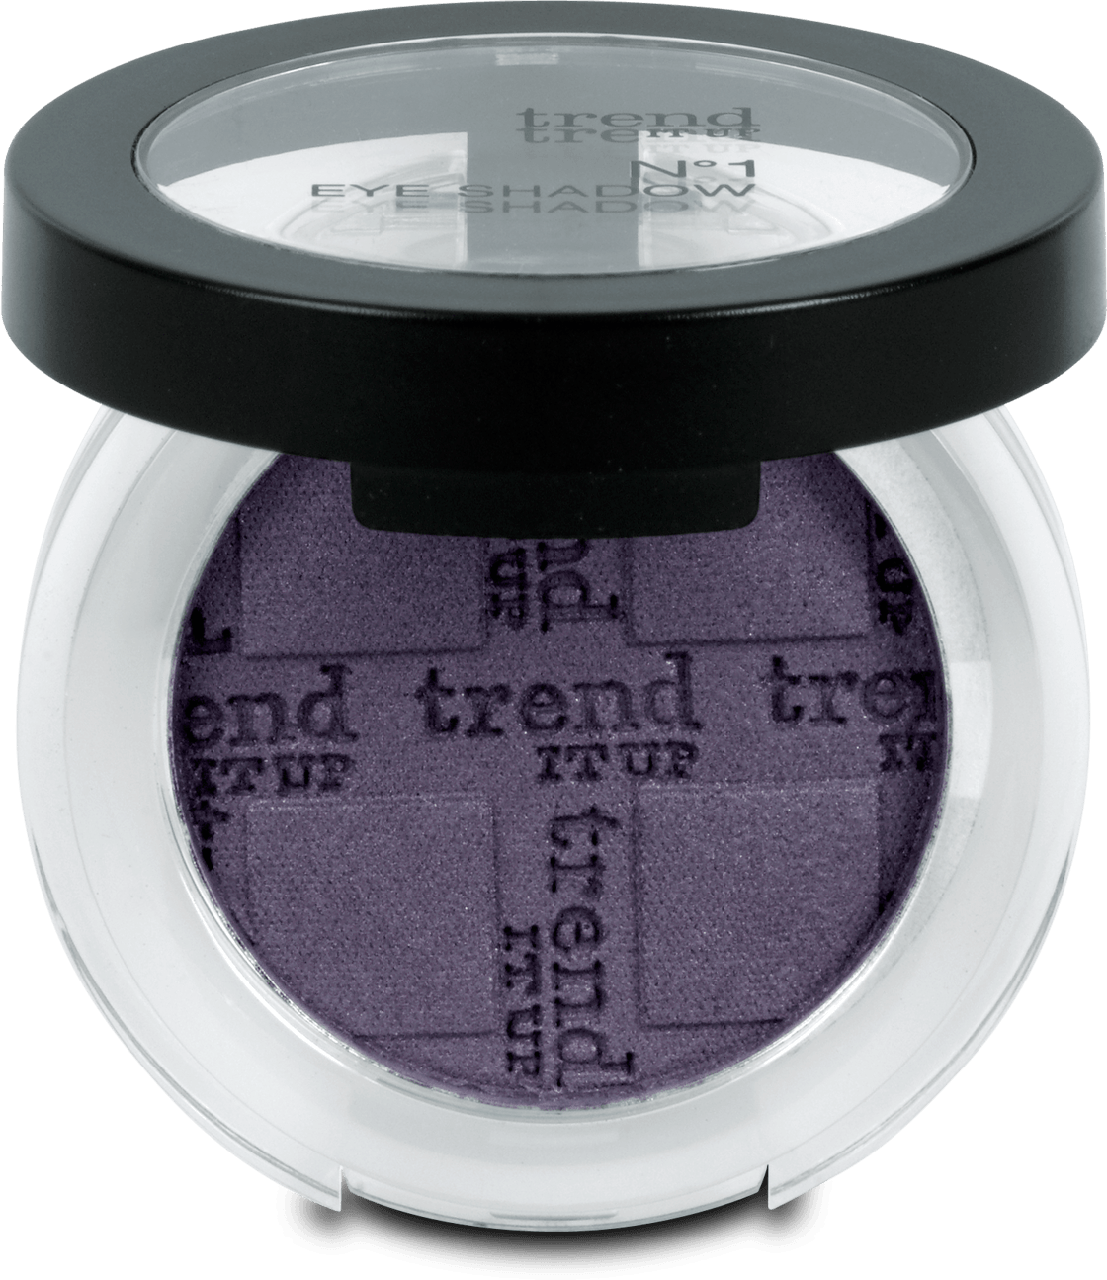 Тени для век trend IT UP N°1 Eye Shadow 120, 2,5 g.